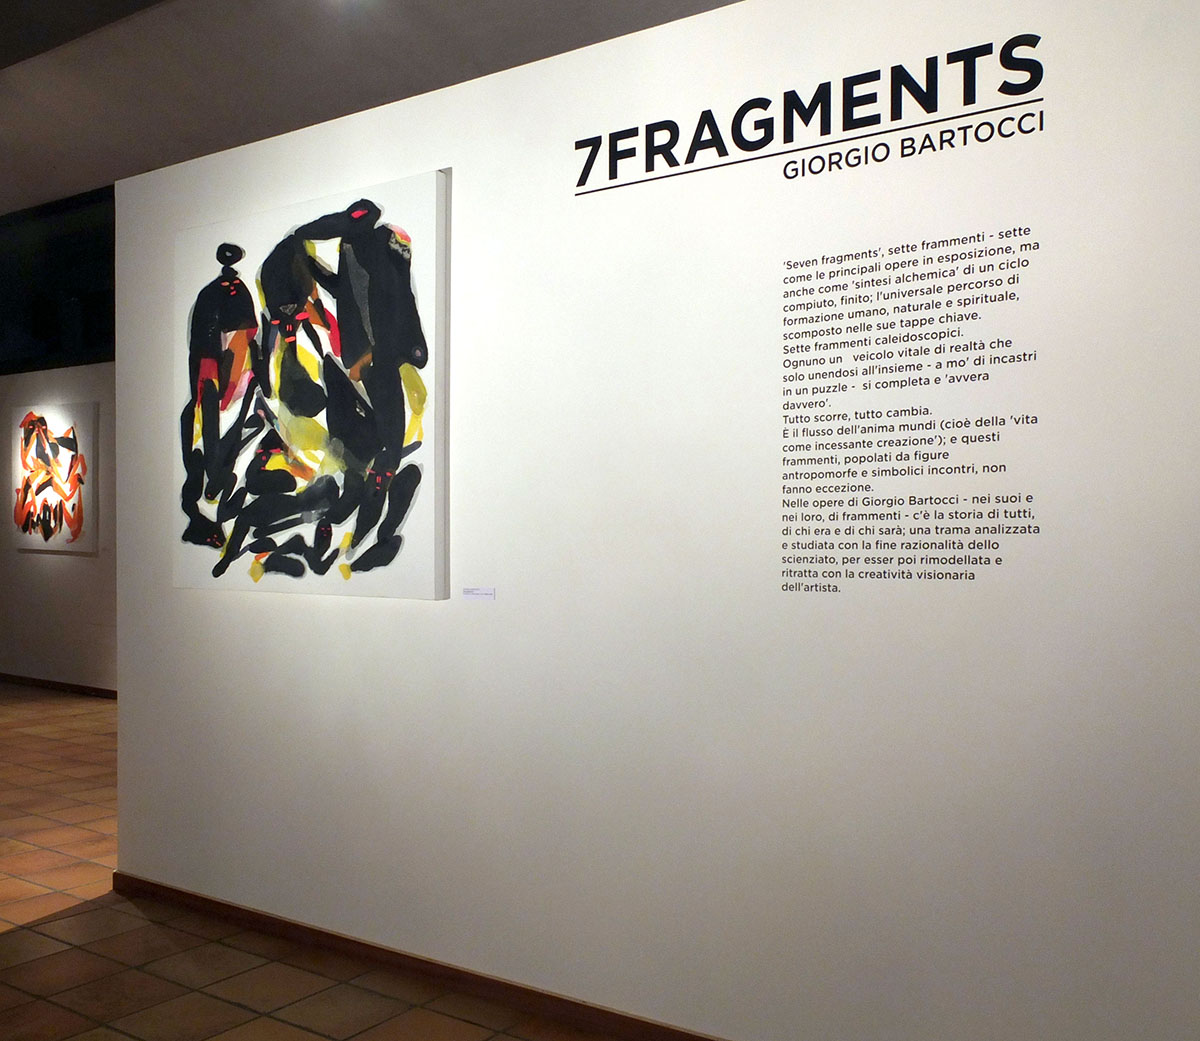 giorgio-bartocci-7-fragments-at-grauen-studio-07